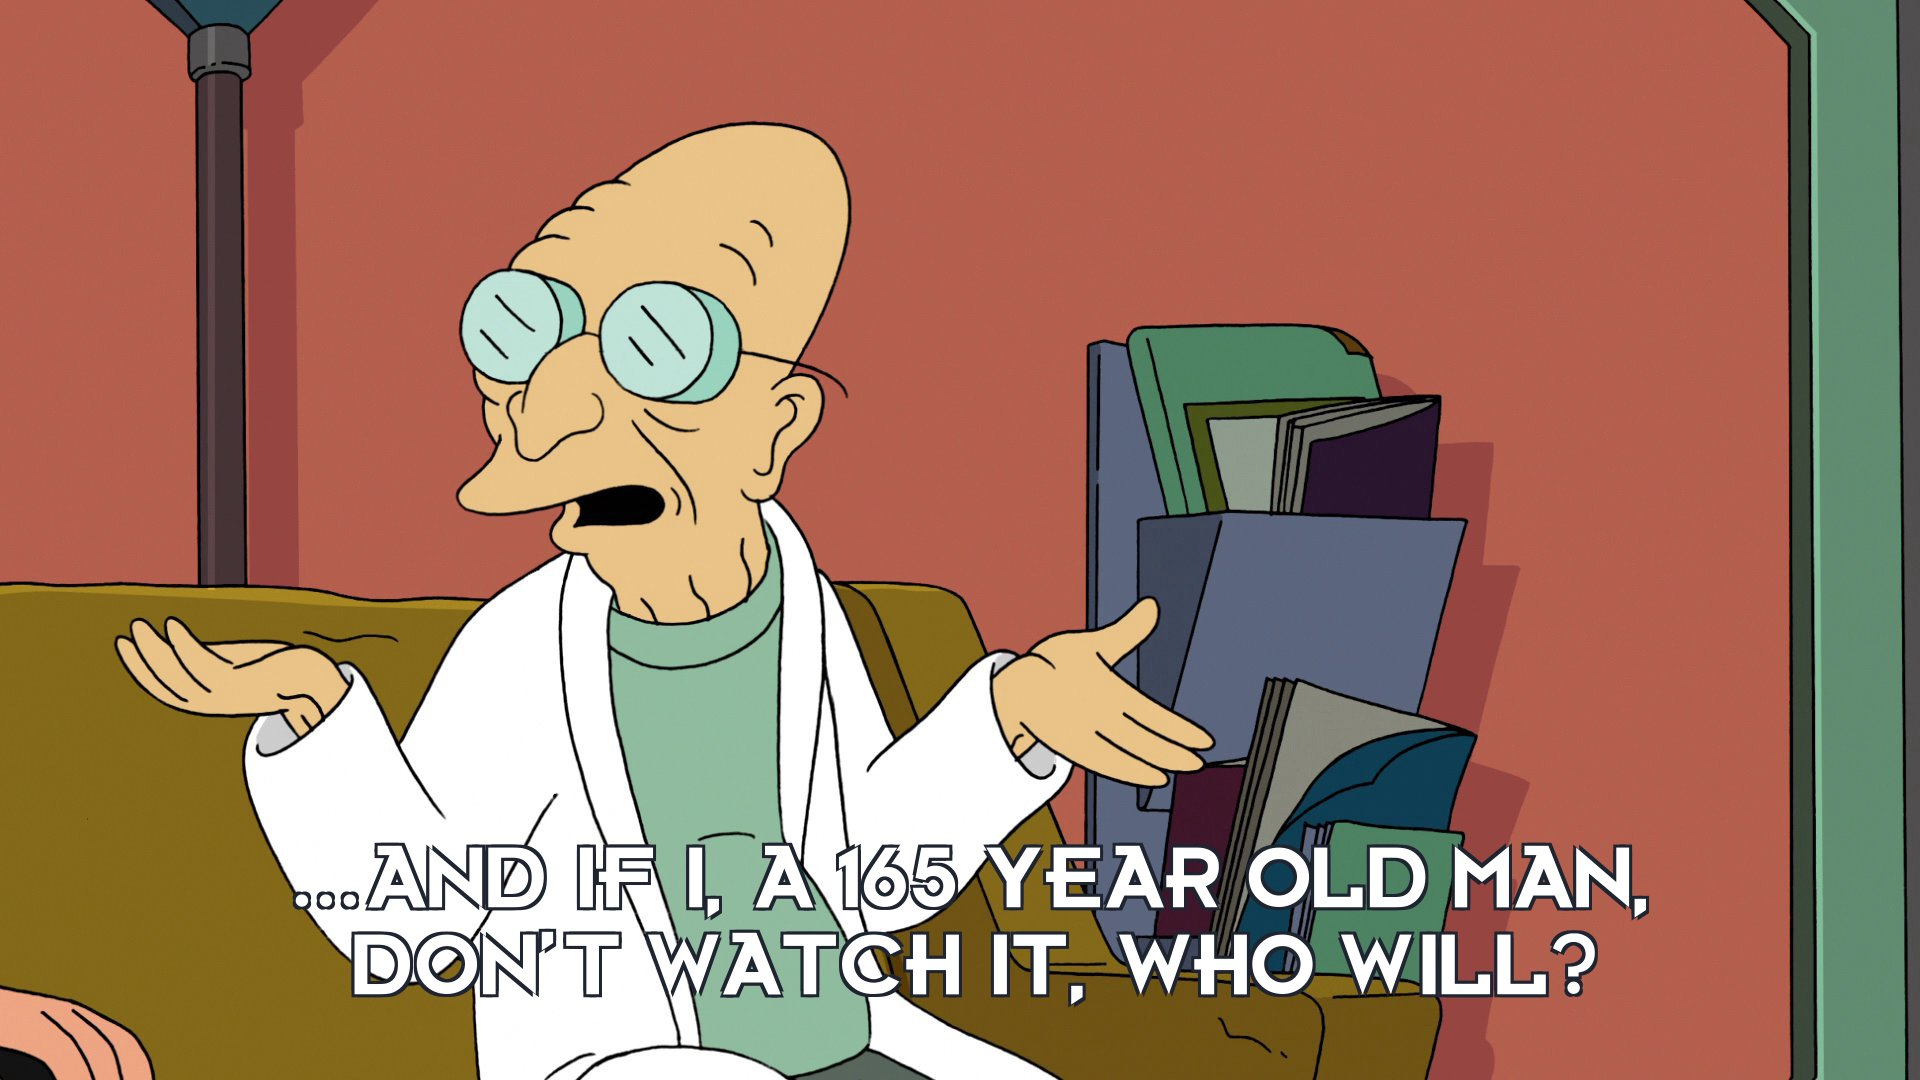 Prof Hubert J Farnsworth: ...and if I, a 165 year old man, don't watch it, who will?